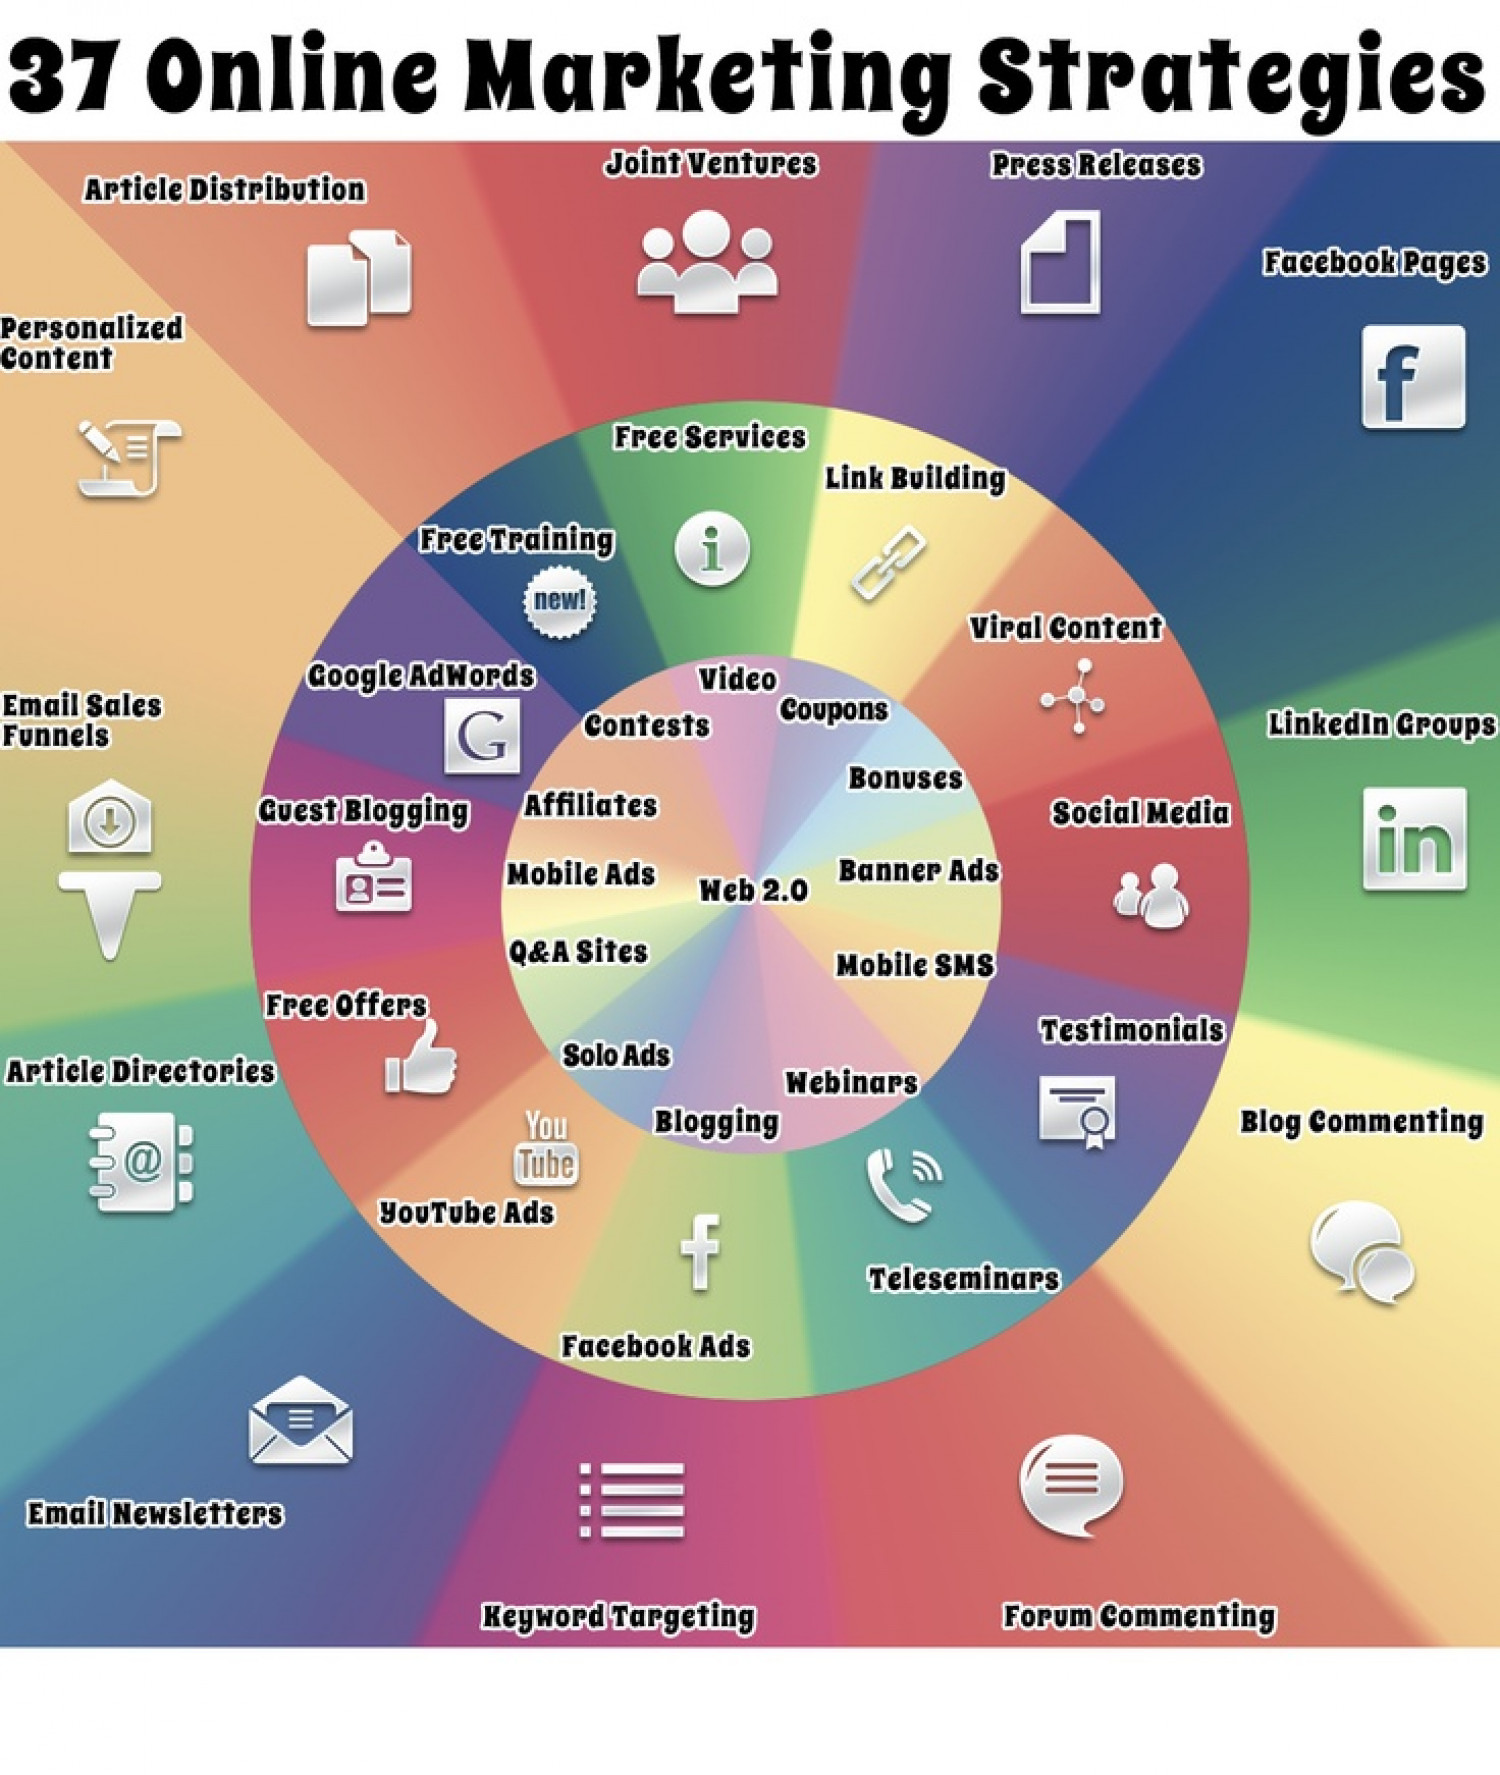 Making Use of Online Marketing Infographic